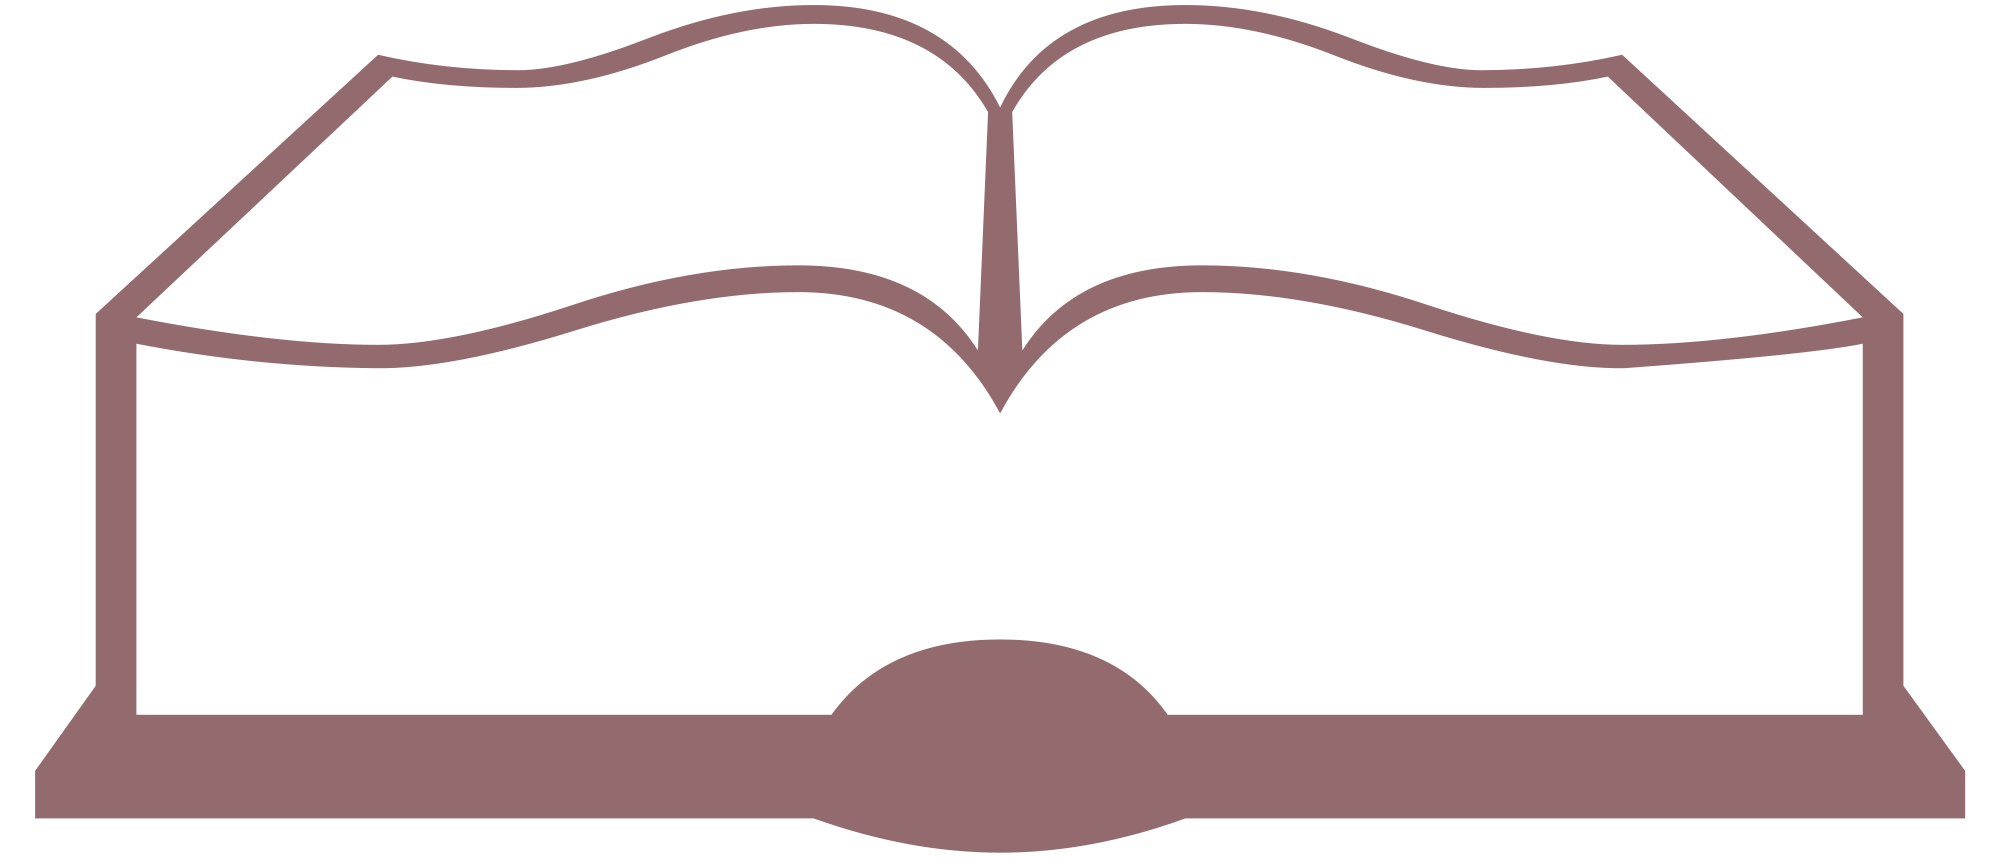 Book silhouette png. File svg wikimedia commons